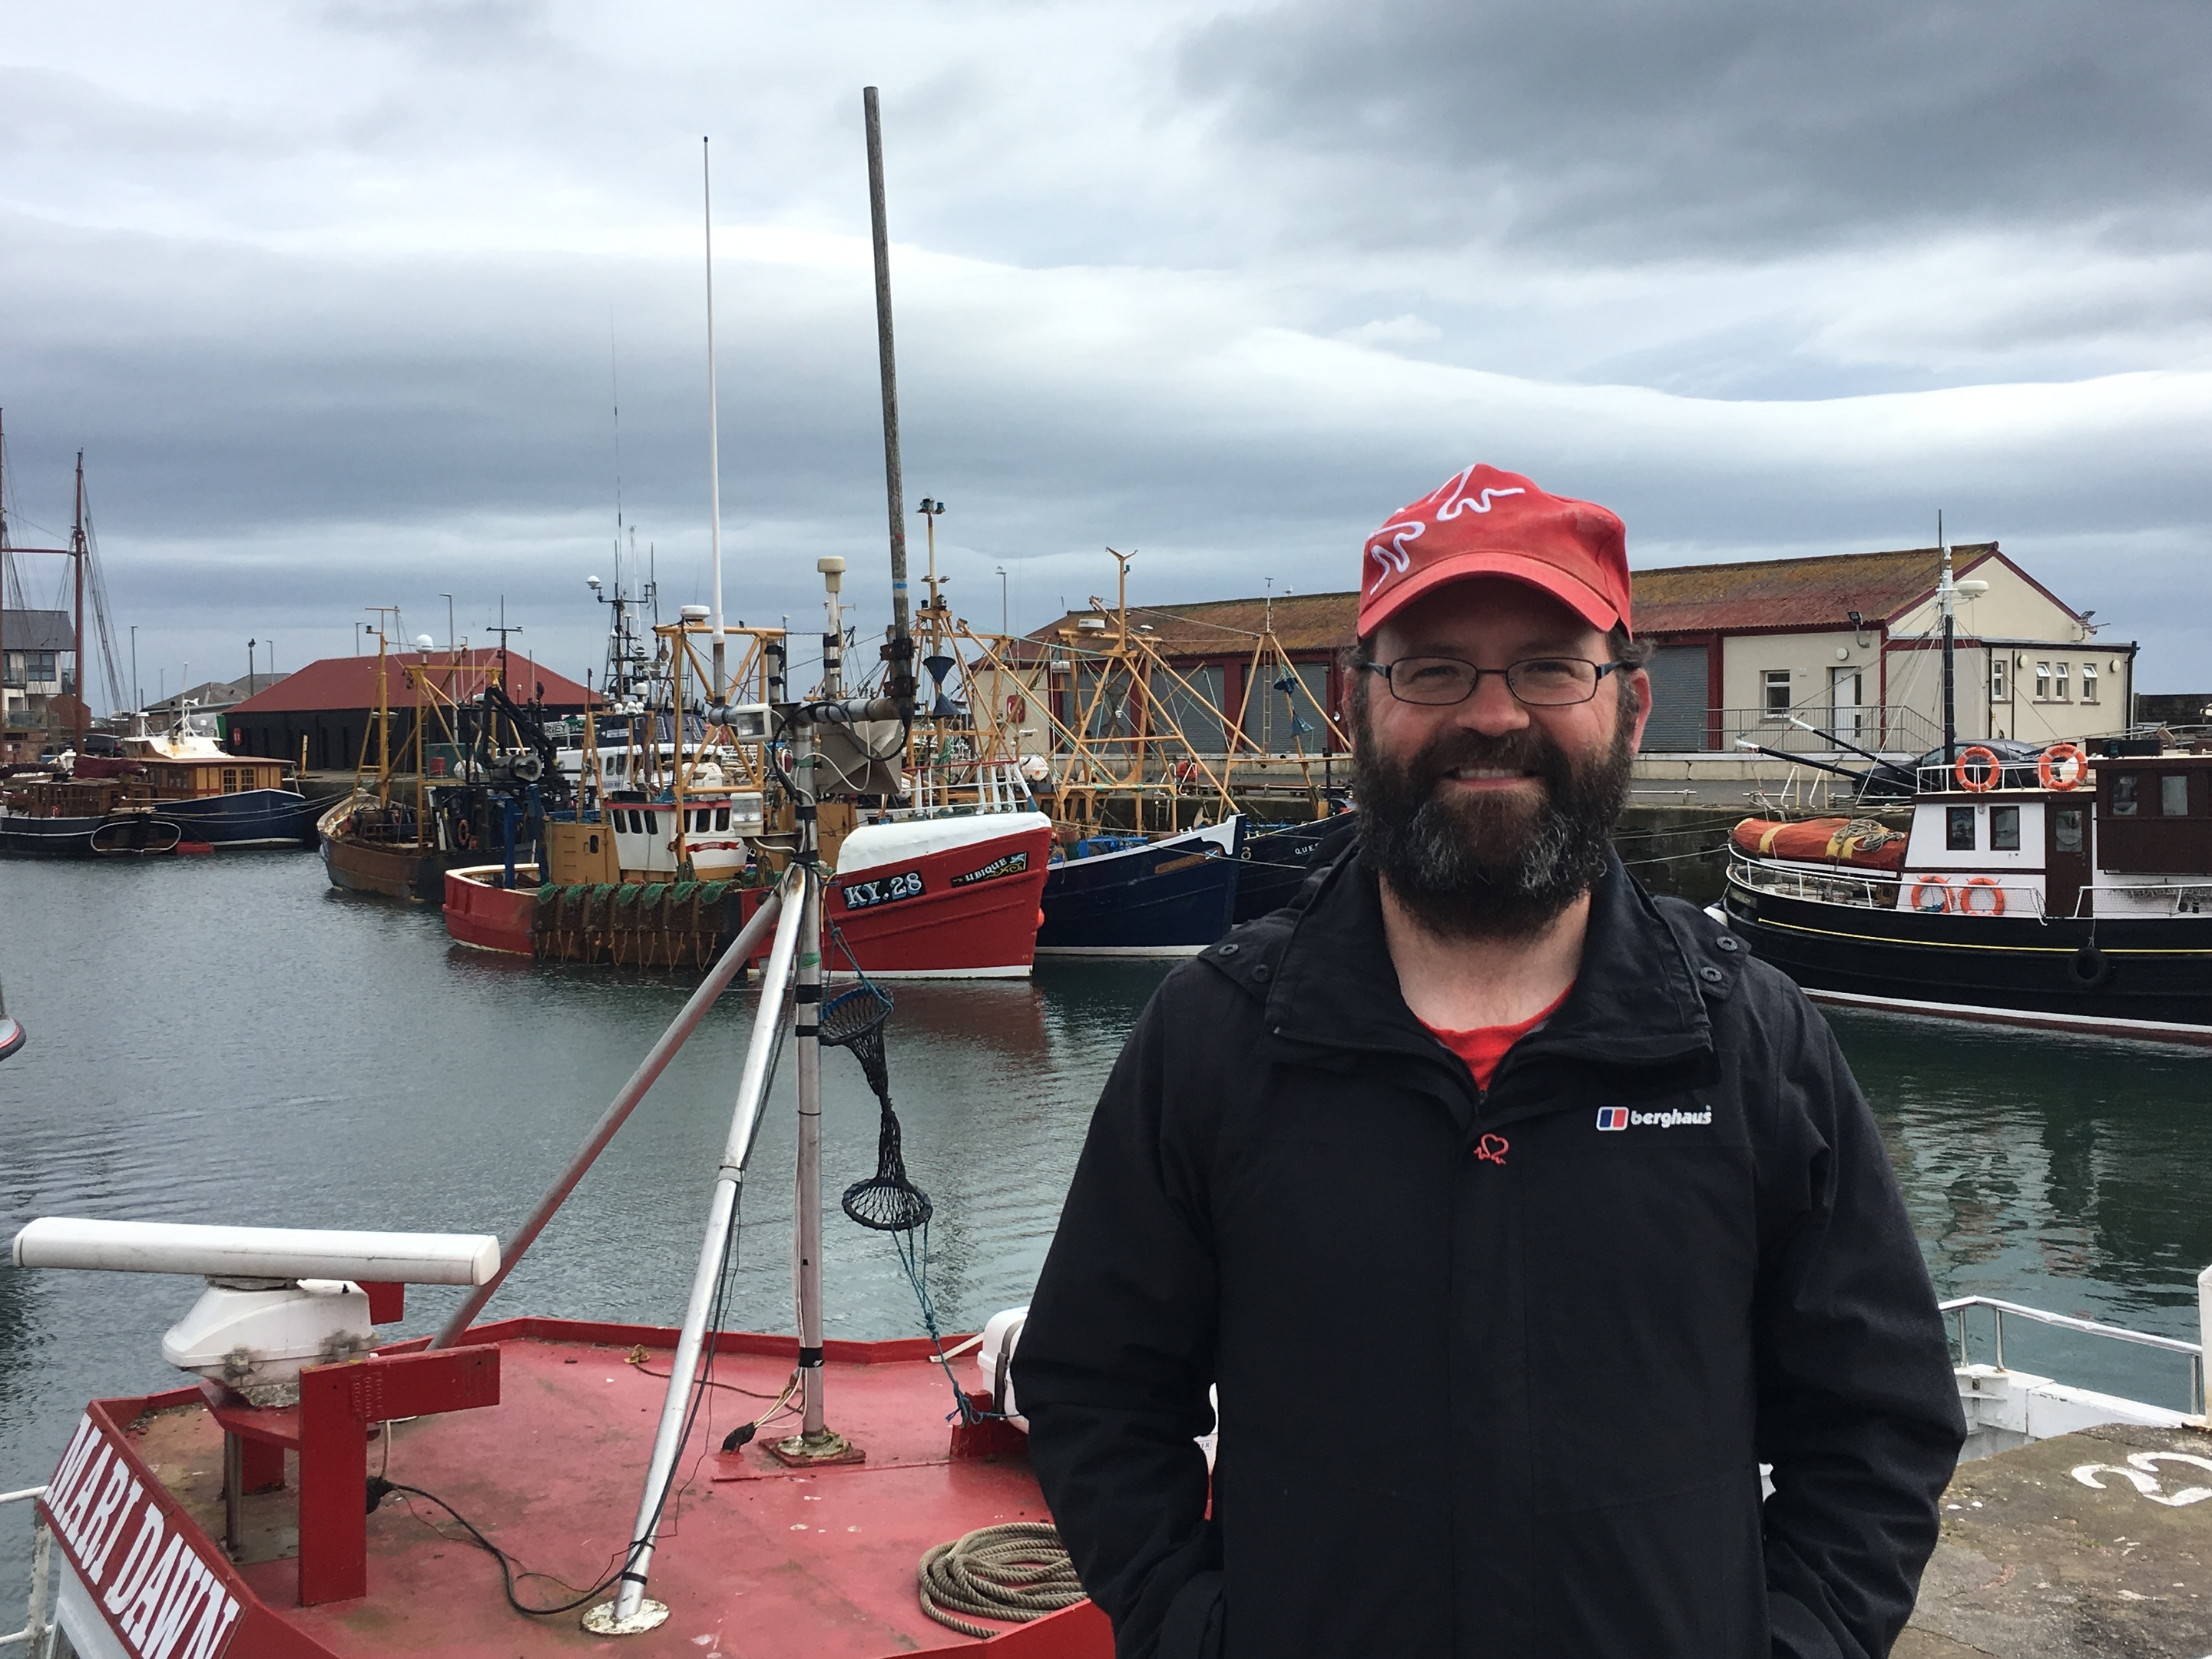 Kieran Sandwell, who is walking the coast of Britain, at Arbroath Harbour